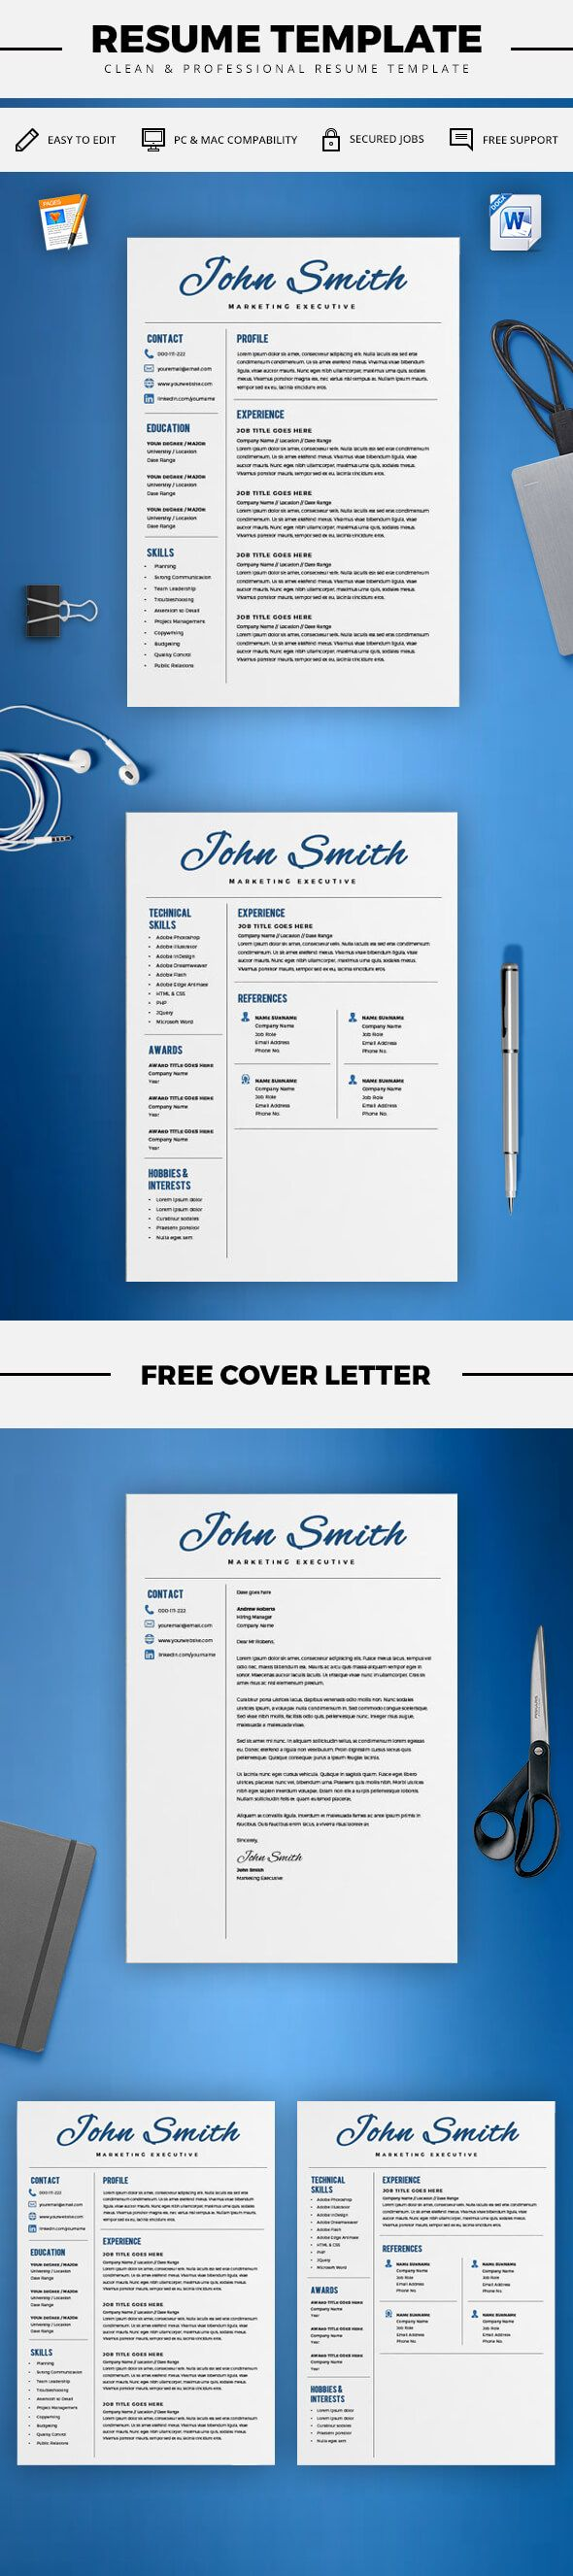 Fantastic 10 Best Resumes Thin 10 Steps To Creating An Effective Resume Shaped 100 Free Resume 1099 Employee Contract Template Old 1300 Resume Government Samples Selection Criteria Red15 Minute Schedule Template 25  Best Ideas About Resume Template Free On Pinterest | Free ..